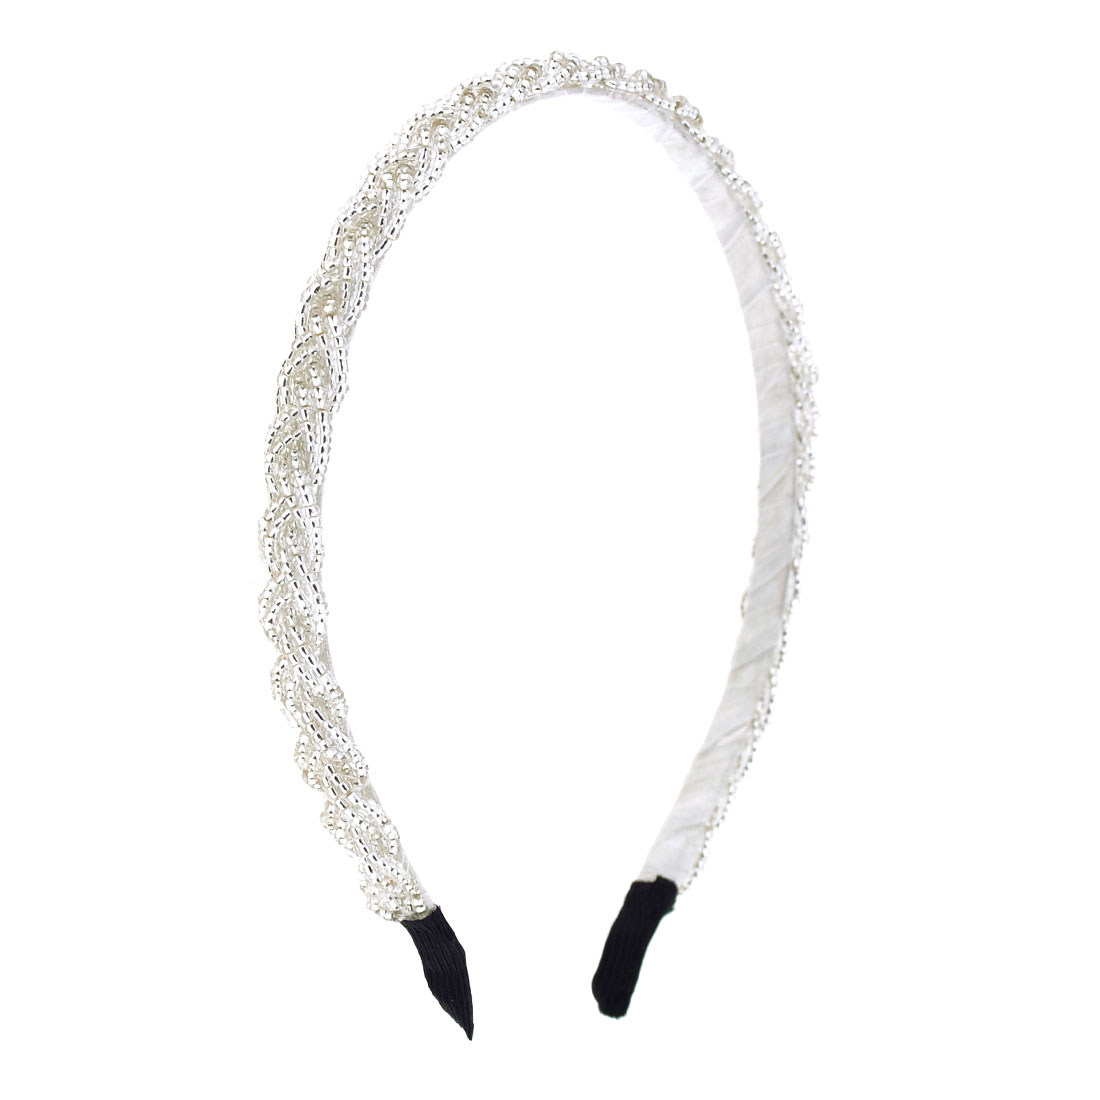 Lady Organza Wrapped Plastic Braided Beads Coated Metal Hairband Hair Hoop White